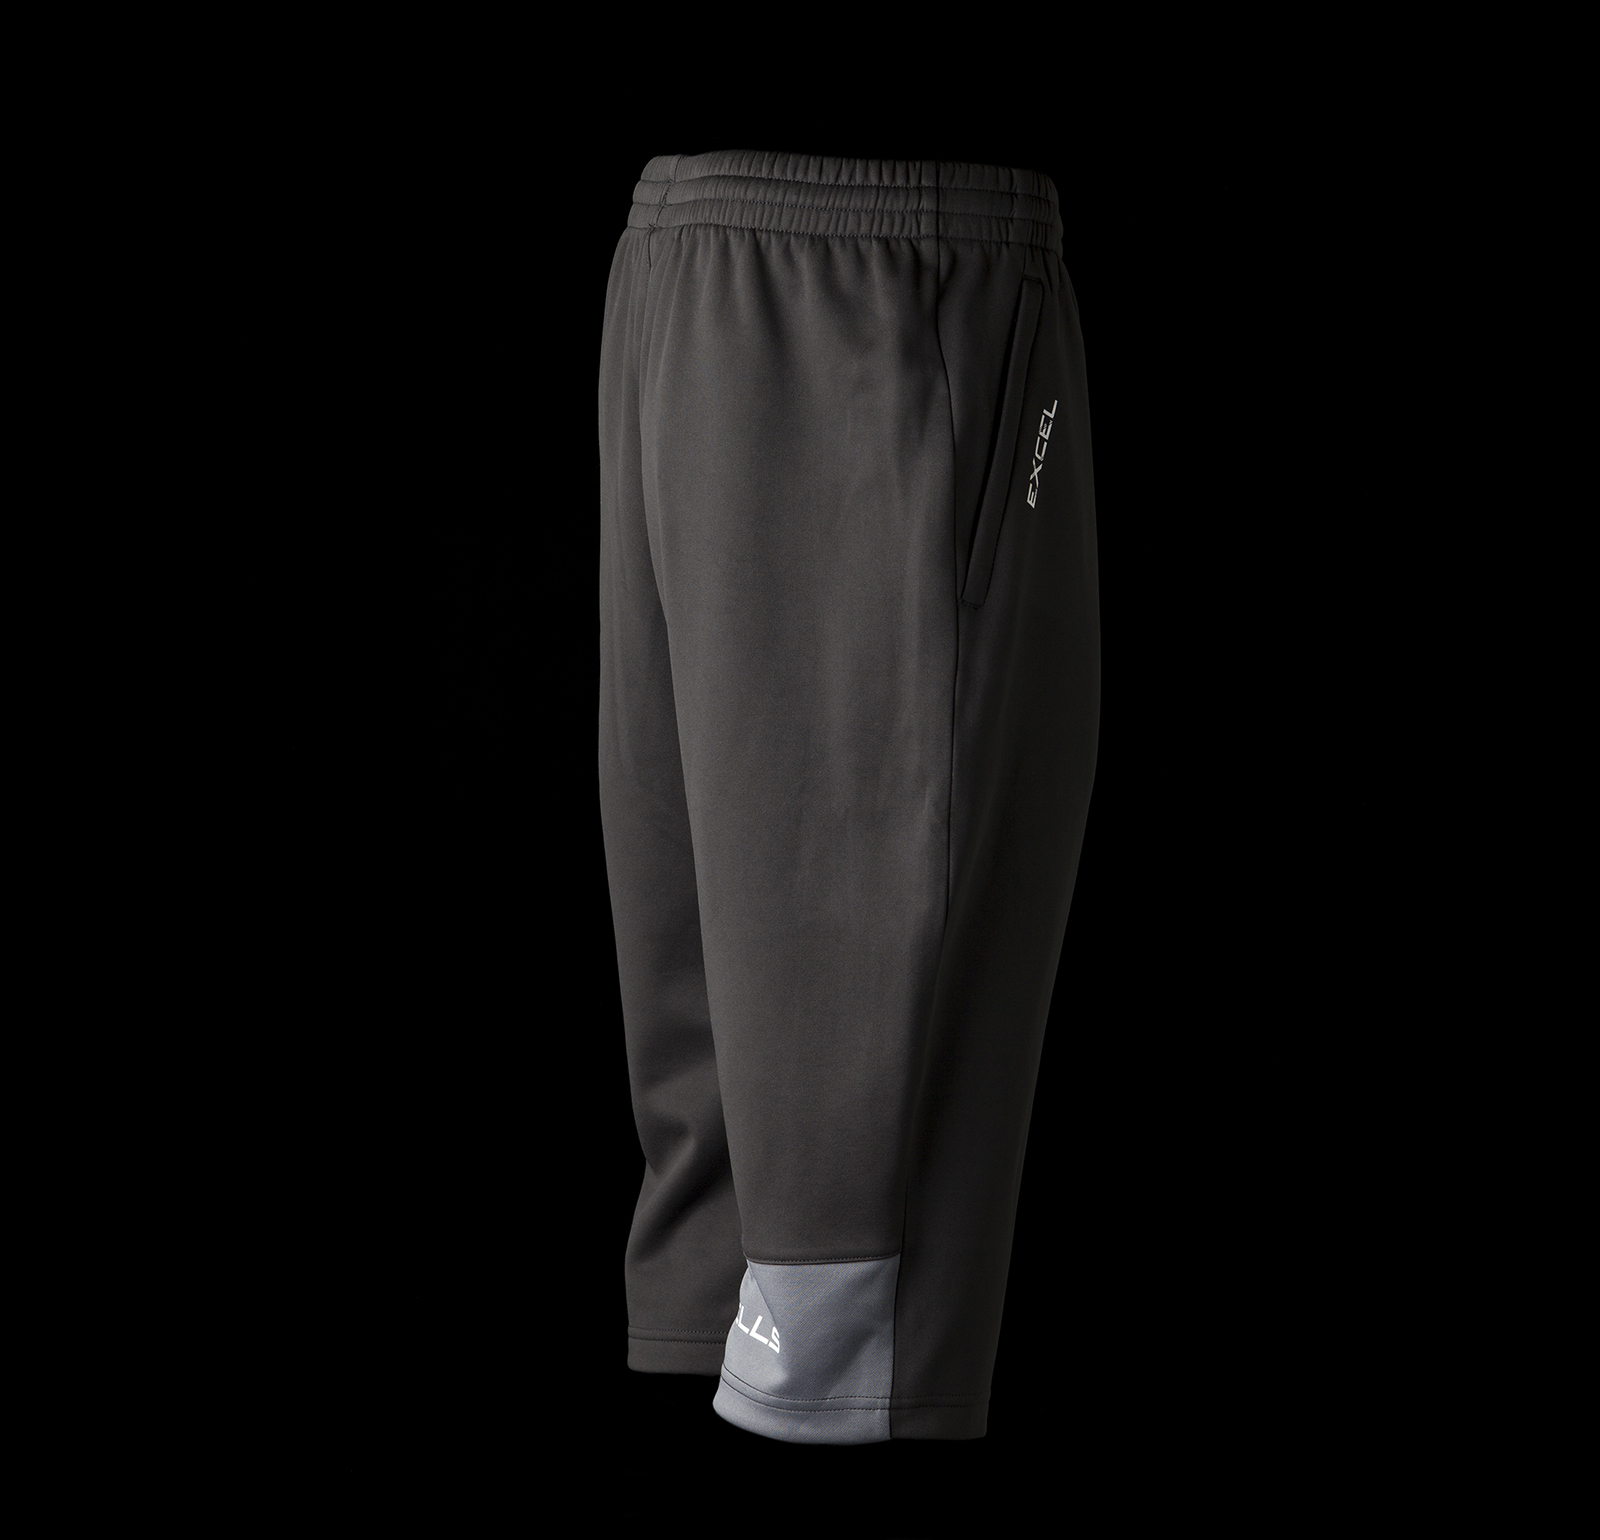 excel-3-4-pant-promo-52